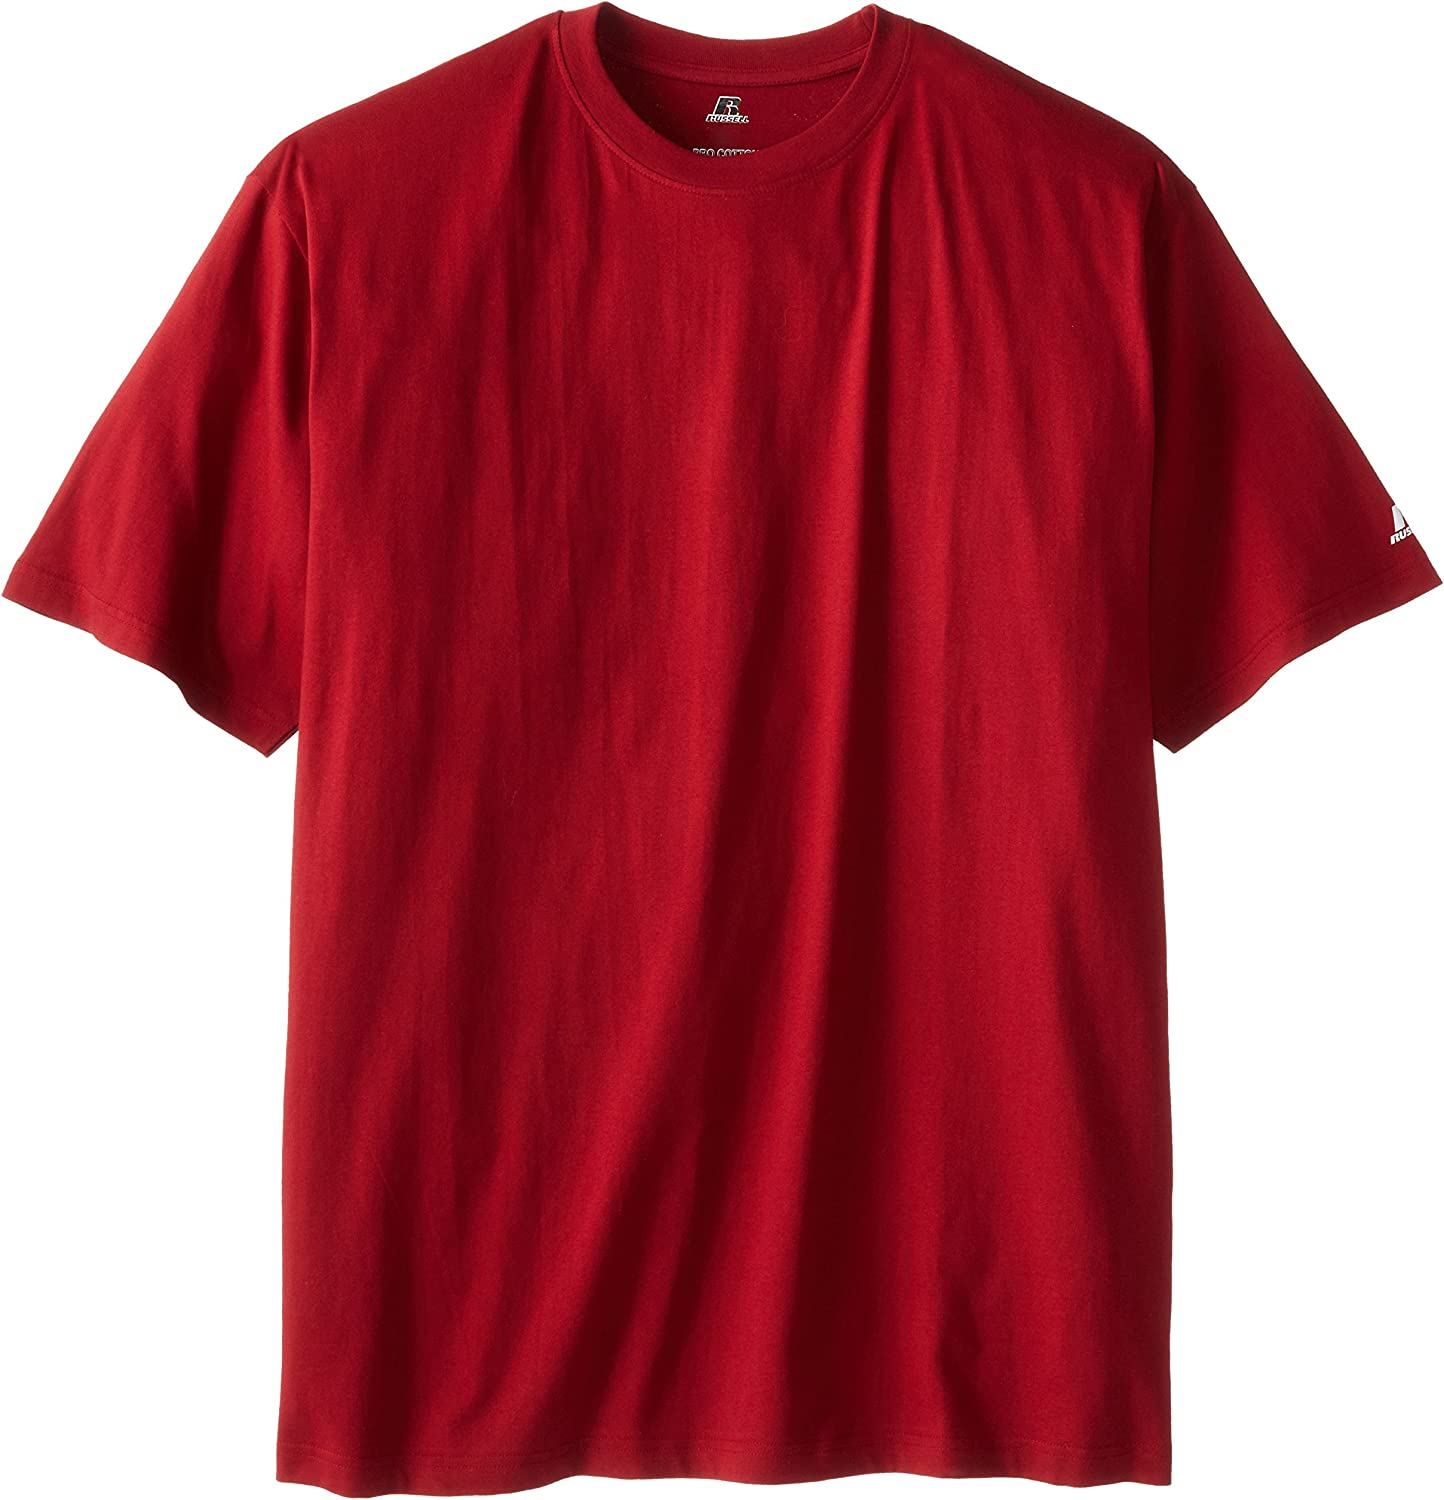 B000783QK6 Russell Athletic Men's Big & Tall Basic Short Sleeve Solid Crew Neck T-Shirt, Cardinal Red, 3XT 911iUVM34hL